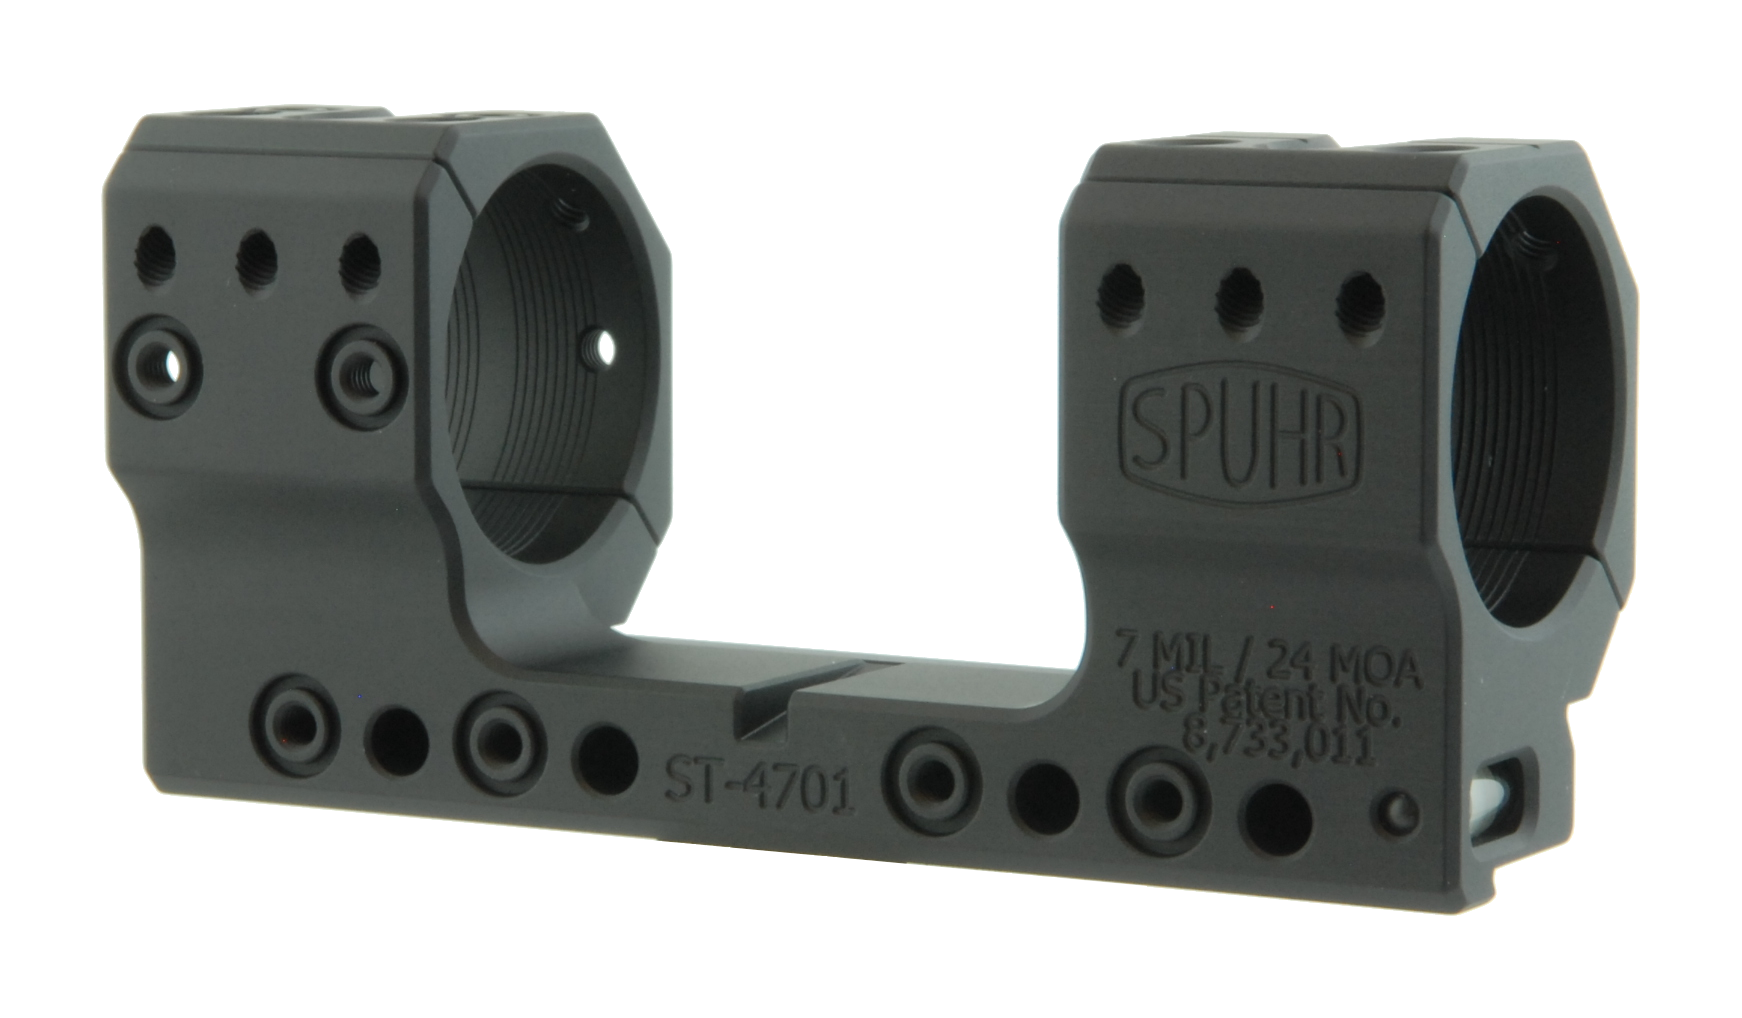 "ST-4701 Scope Mount Ø34 H35mm/1.378"" 7MIL TRG"